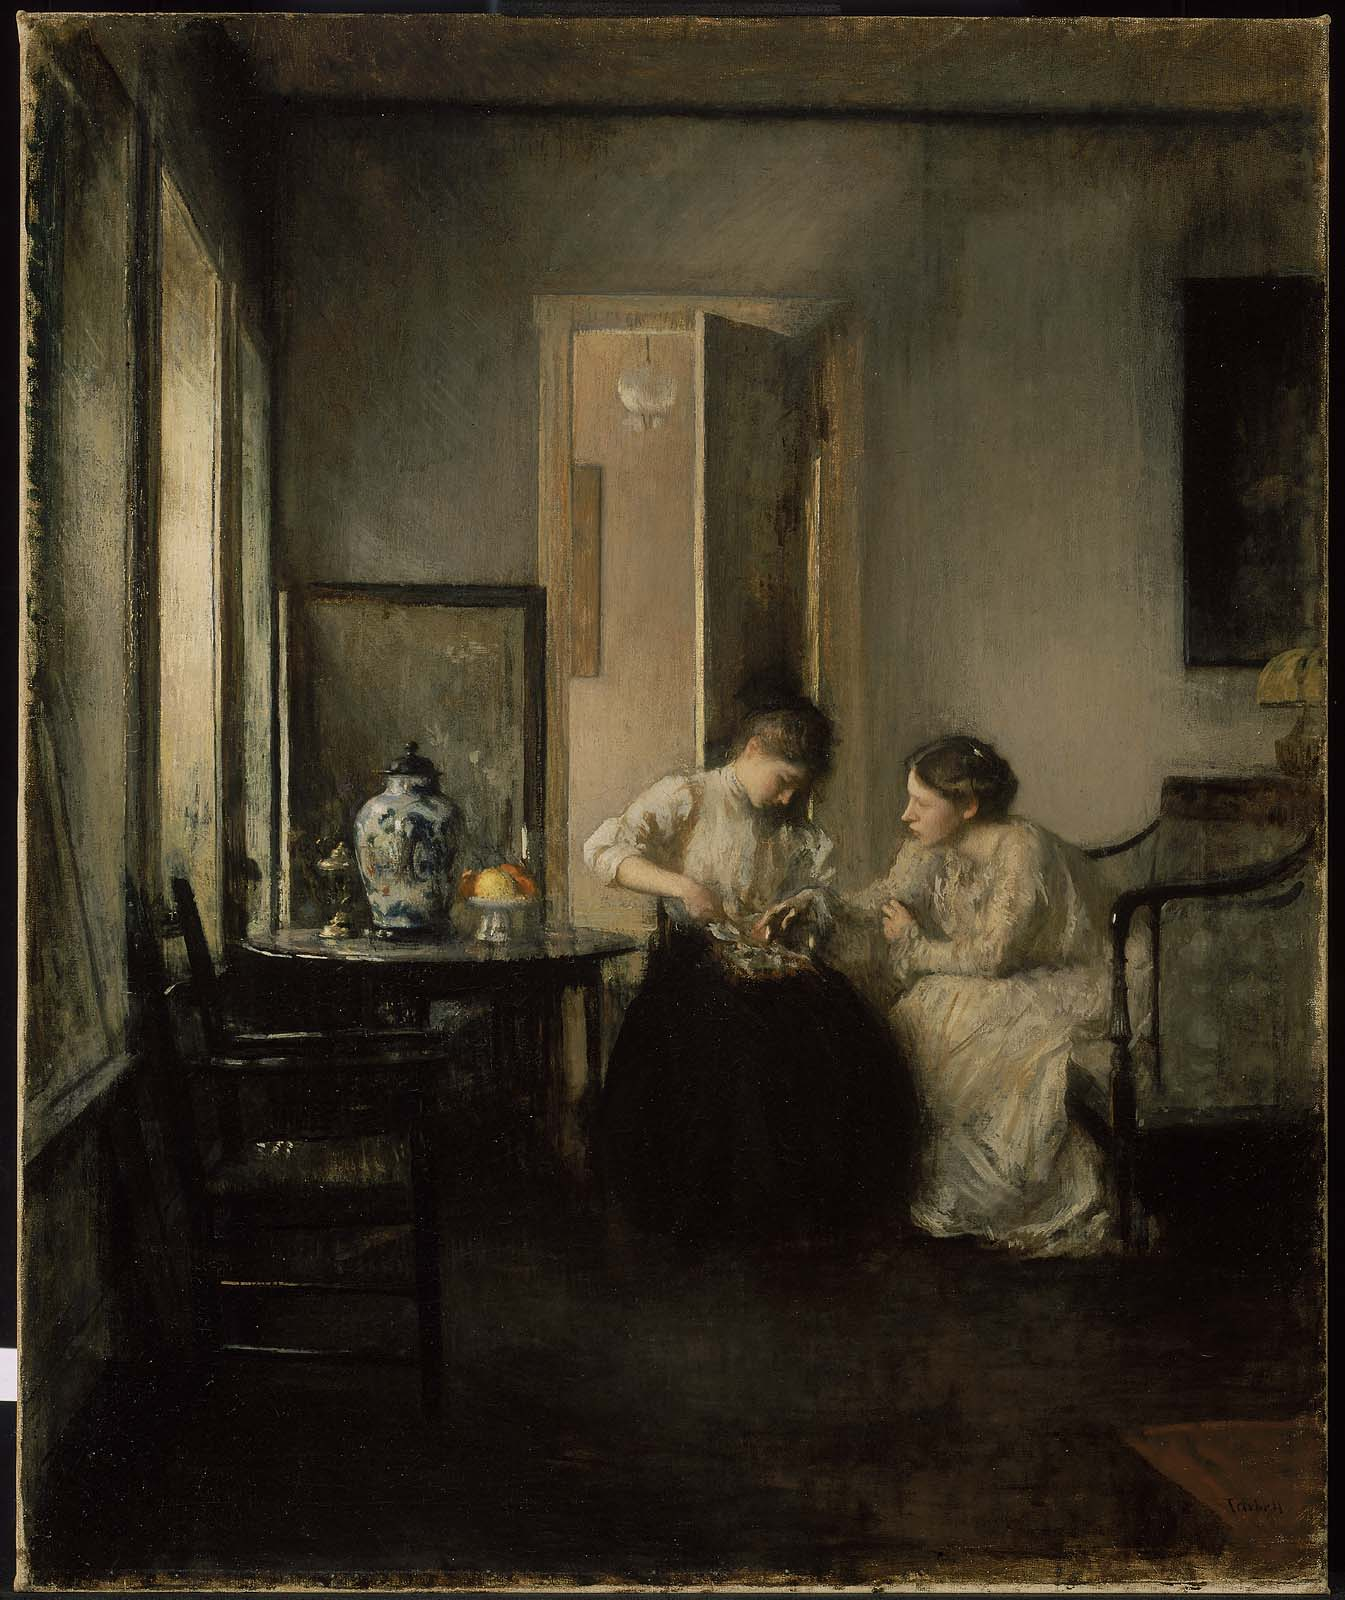 Interior Home Painting With Fine Interior Home Painting: Museum Of Fine Arts, Boston